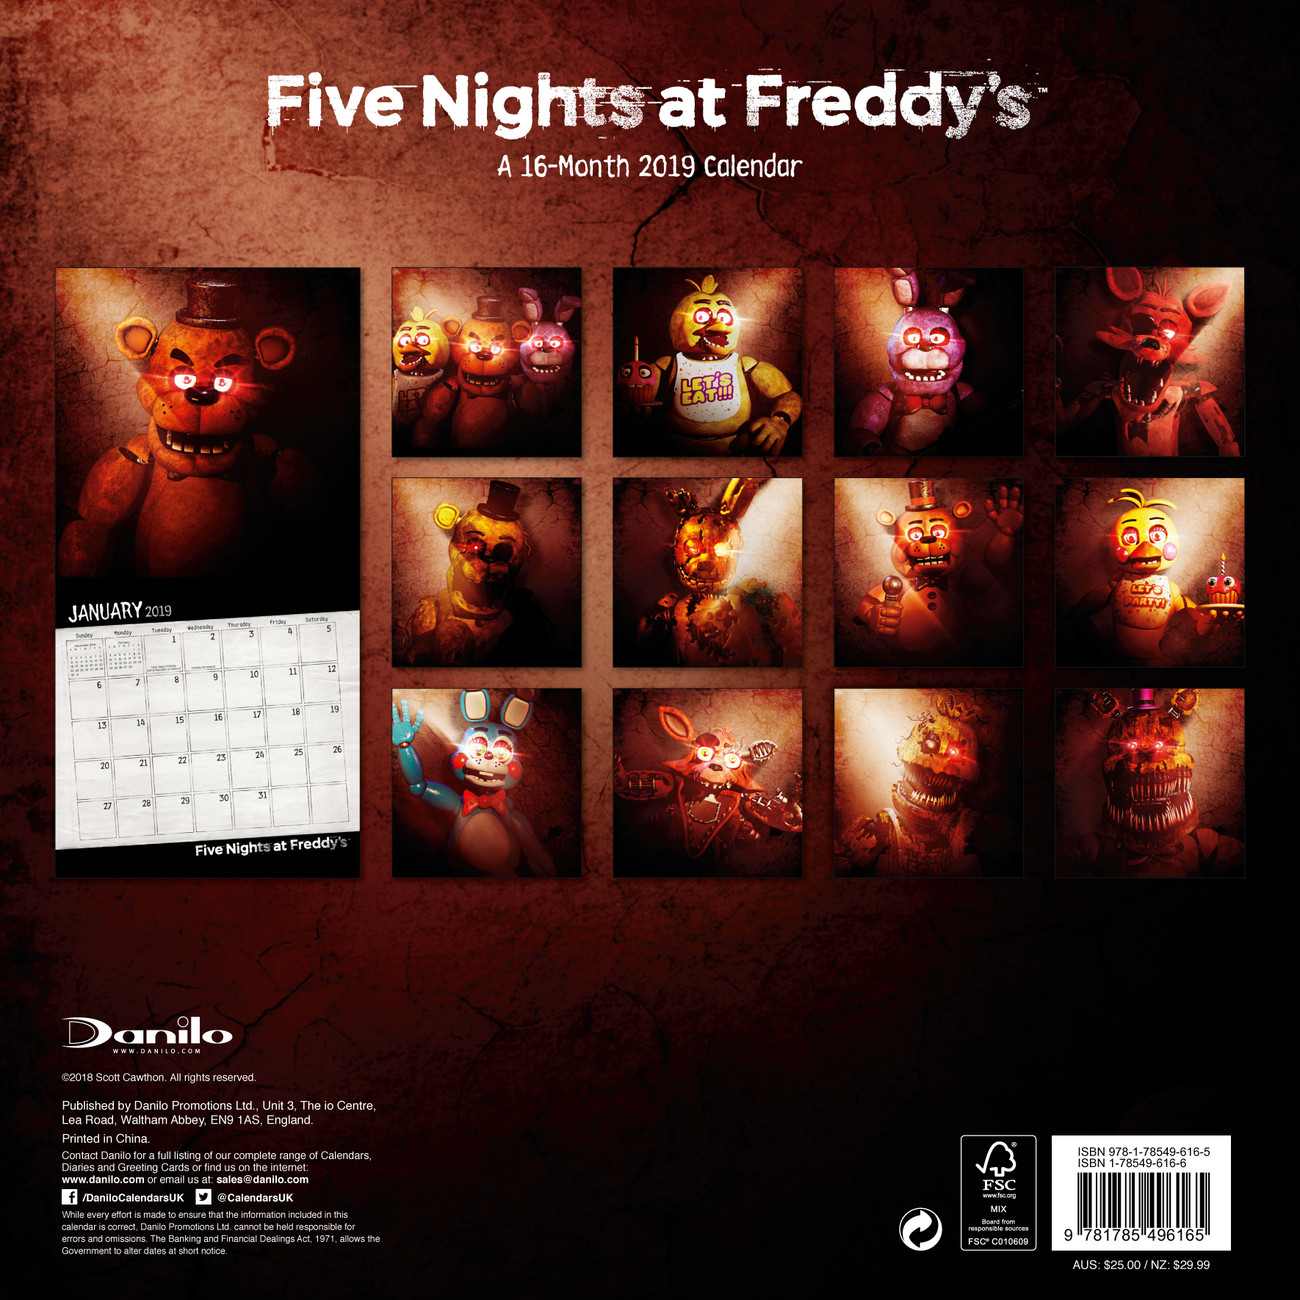 Календар 2020 Five Nights At Freddys for Free Calendar For 2020 Peclia.com